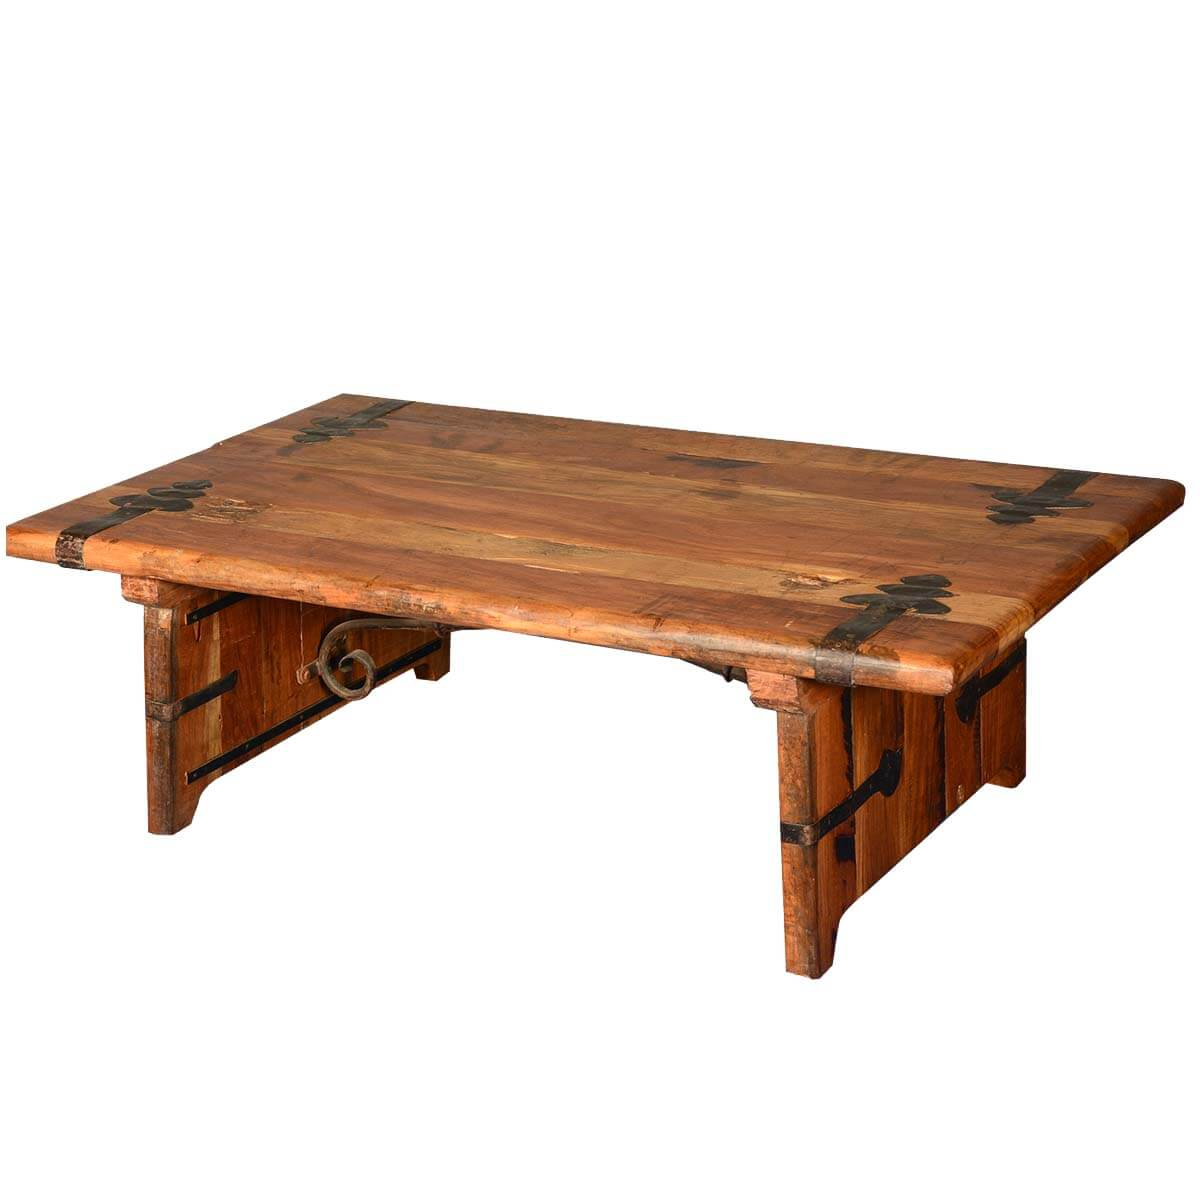 Rustic reclaimed wood wrought iron hastings coffee table for Reclaimed coffee table